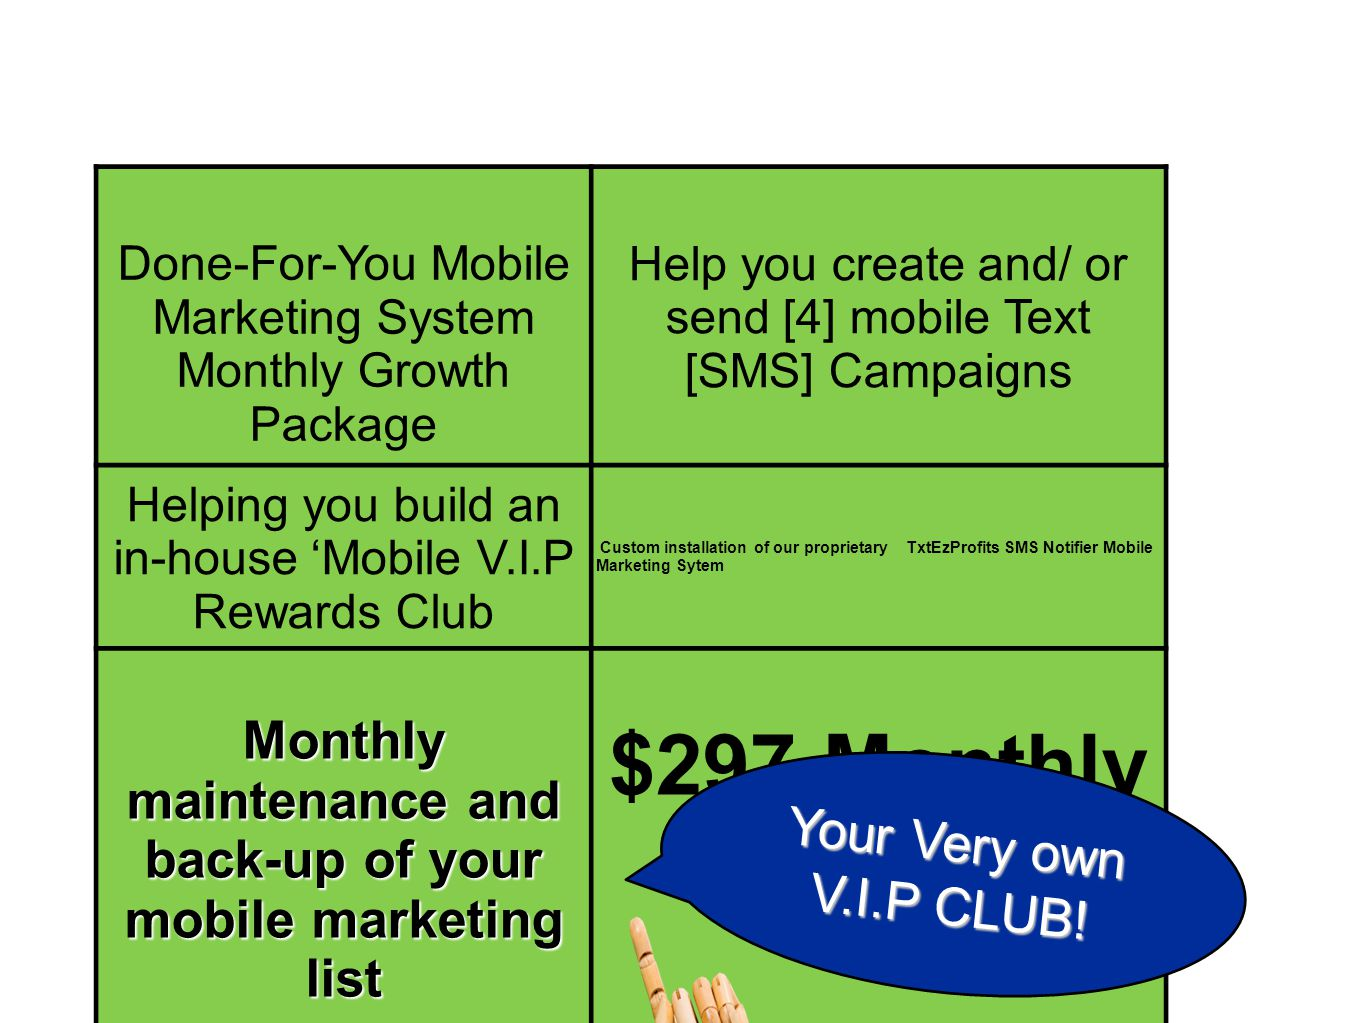 Done-For-You Mobile Marketing System Monthly Growth Package Help you create and/ or send [4] mobile Text [SMS] Campaigns Helping you build an in-house 'Mobile V.I.P Rewards Club Custom installation of our proprietary TxtEzProfits SMS Notifier Mobile Marketing Sytem Monthly maintenance and back-up of your mobile marketing list $297 Monthly Your Very own V.I.P CLUB!